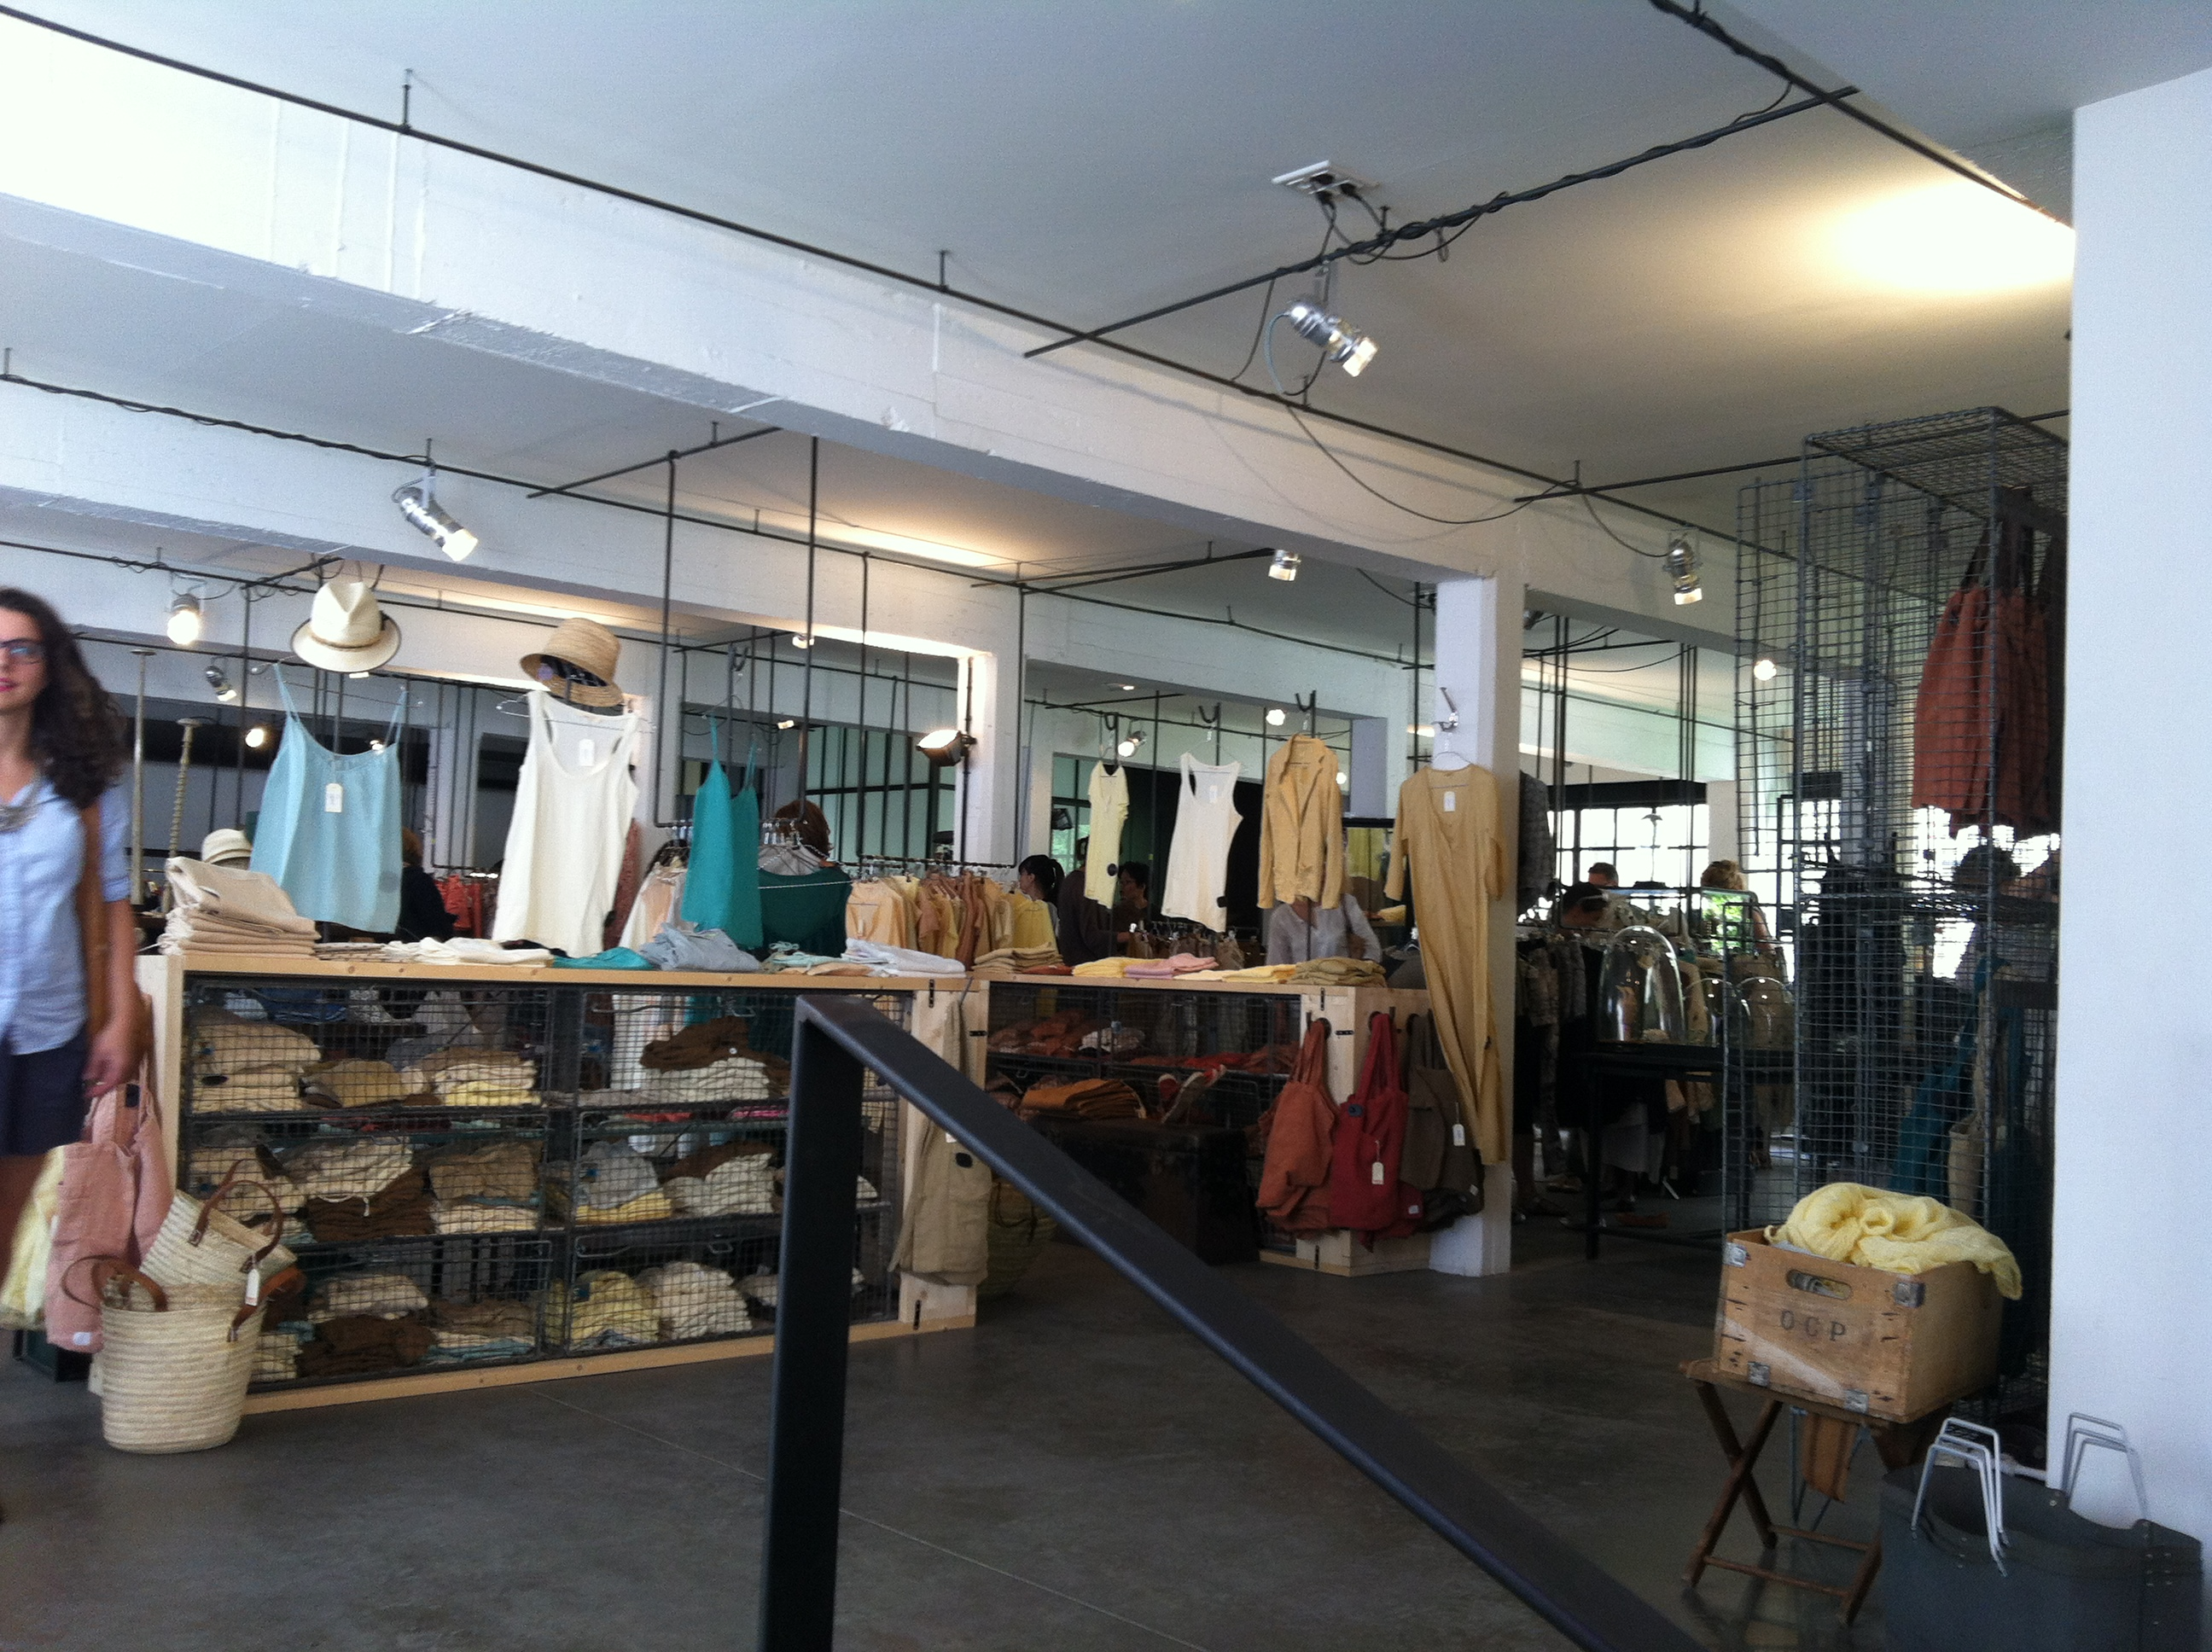 Magasin Muse J Ai Testé Une Boutique Originale à Paris Merci Paris Et Le